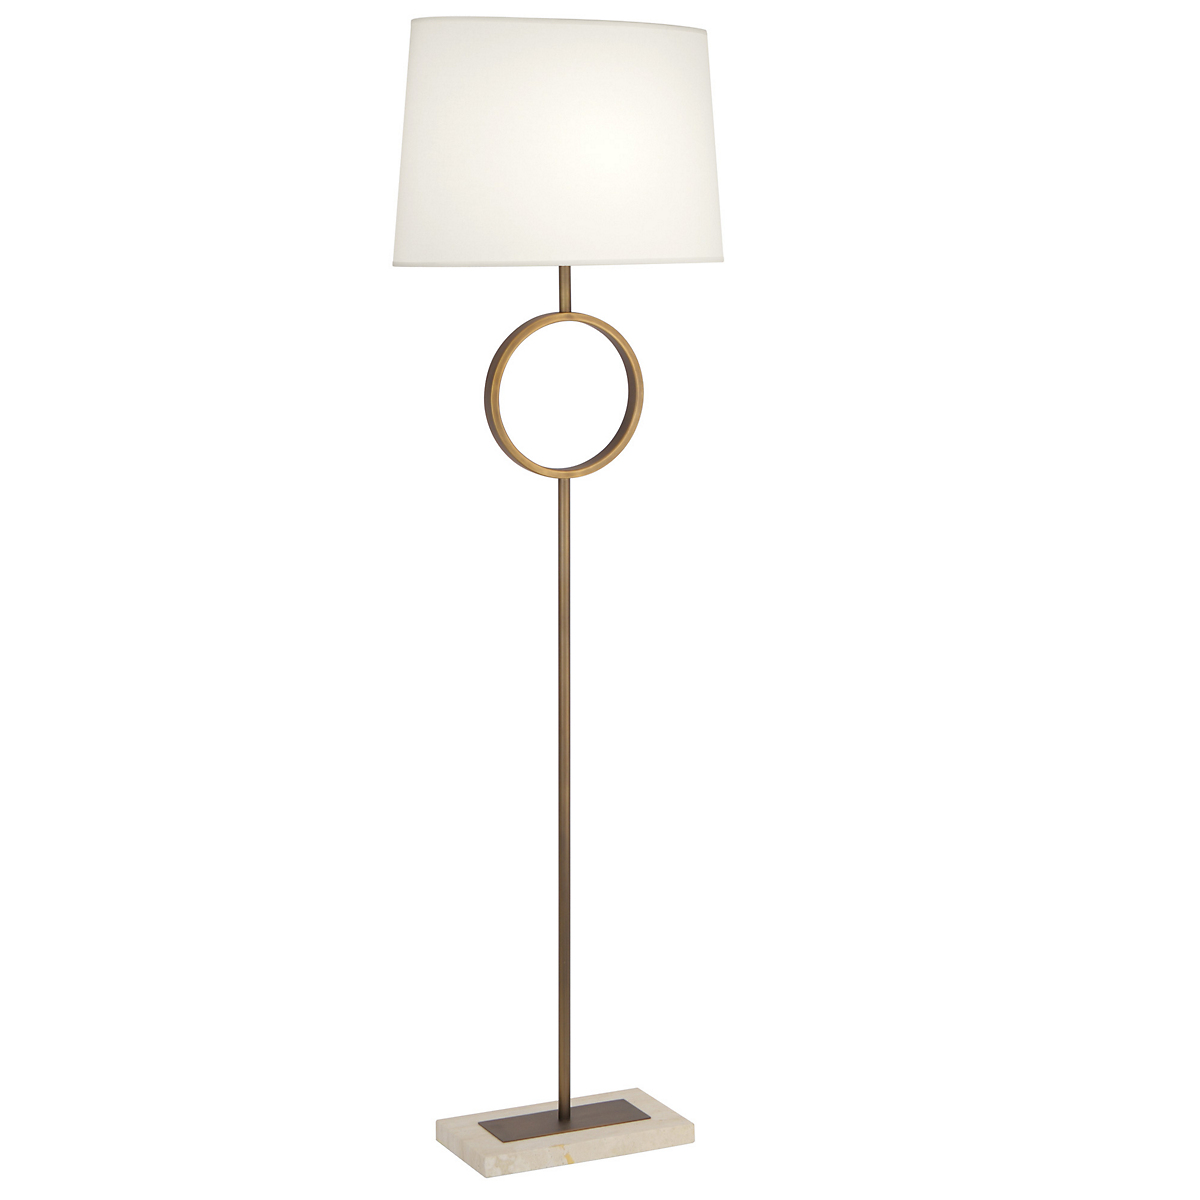 Logan Floor Lamp, Polished Nickel/White